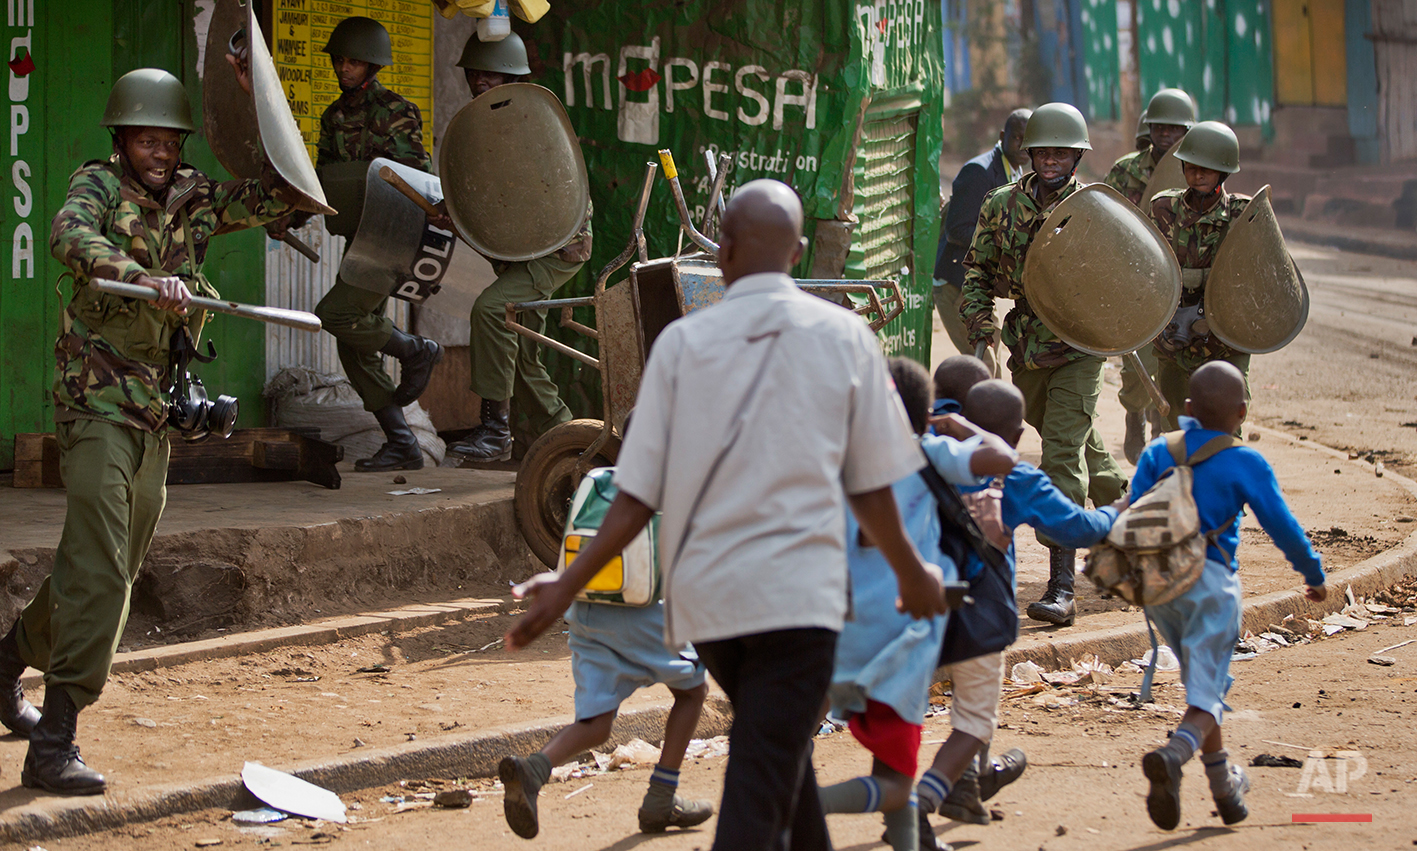 A policeman, left, yells at a man trying to lead schoolchildren to safety, because he was unknowingly about to walk into a hail of rocks thrown by protesters around the corner, as police firing tear gas engage protesters throwing rocks in the Kibera slum of Nairobi, Kenya Monday, May 23, 2016. Kenya's police shot, beat and tear gassed opposition demonstrators across the country who tried to gather to call for the electoral commission to be dissolved due to allegations of bias and corruption. (AP Photo/Ben Curtis)